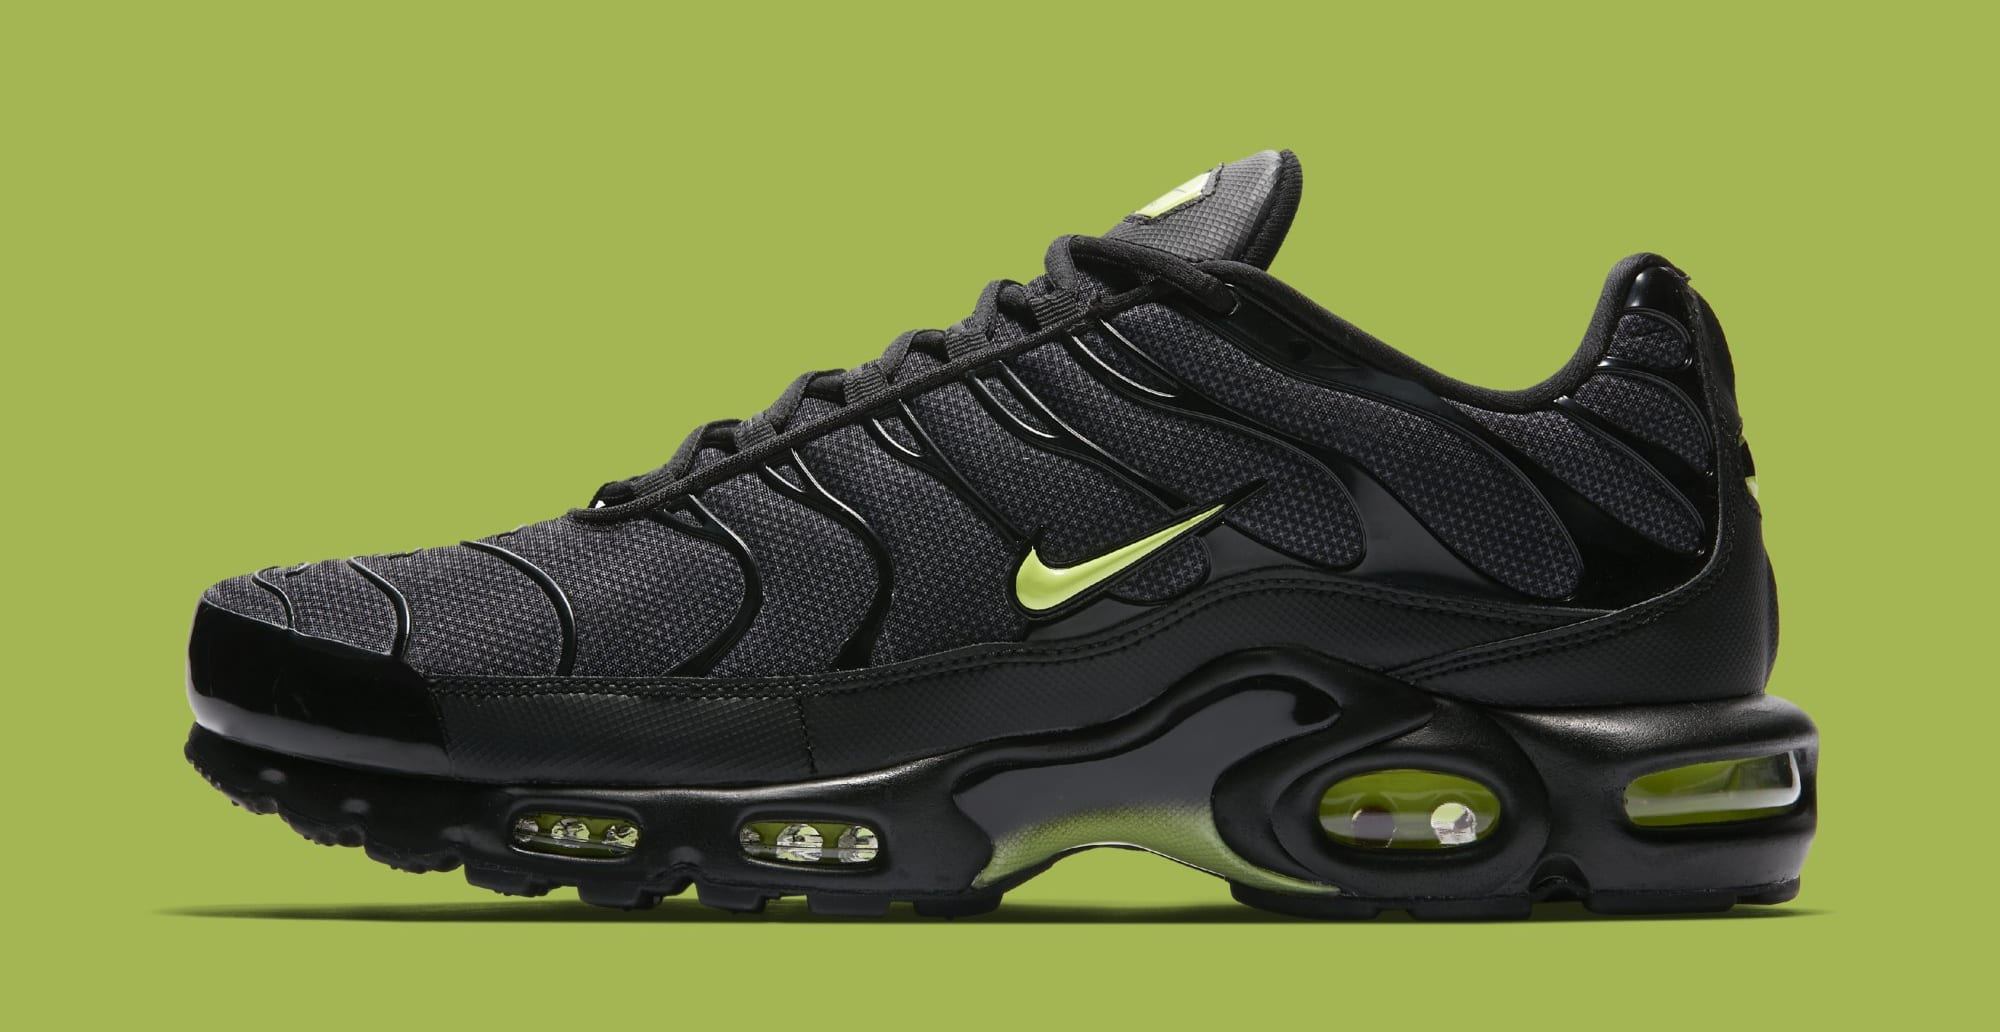 a904d57939f8c ... low price nike air max plus black volt glow wolf grey aj2013 001 34355  6635b